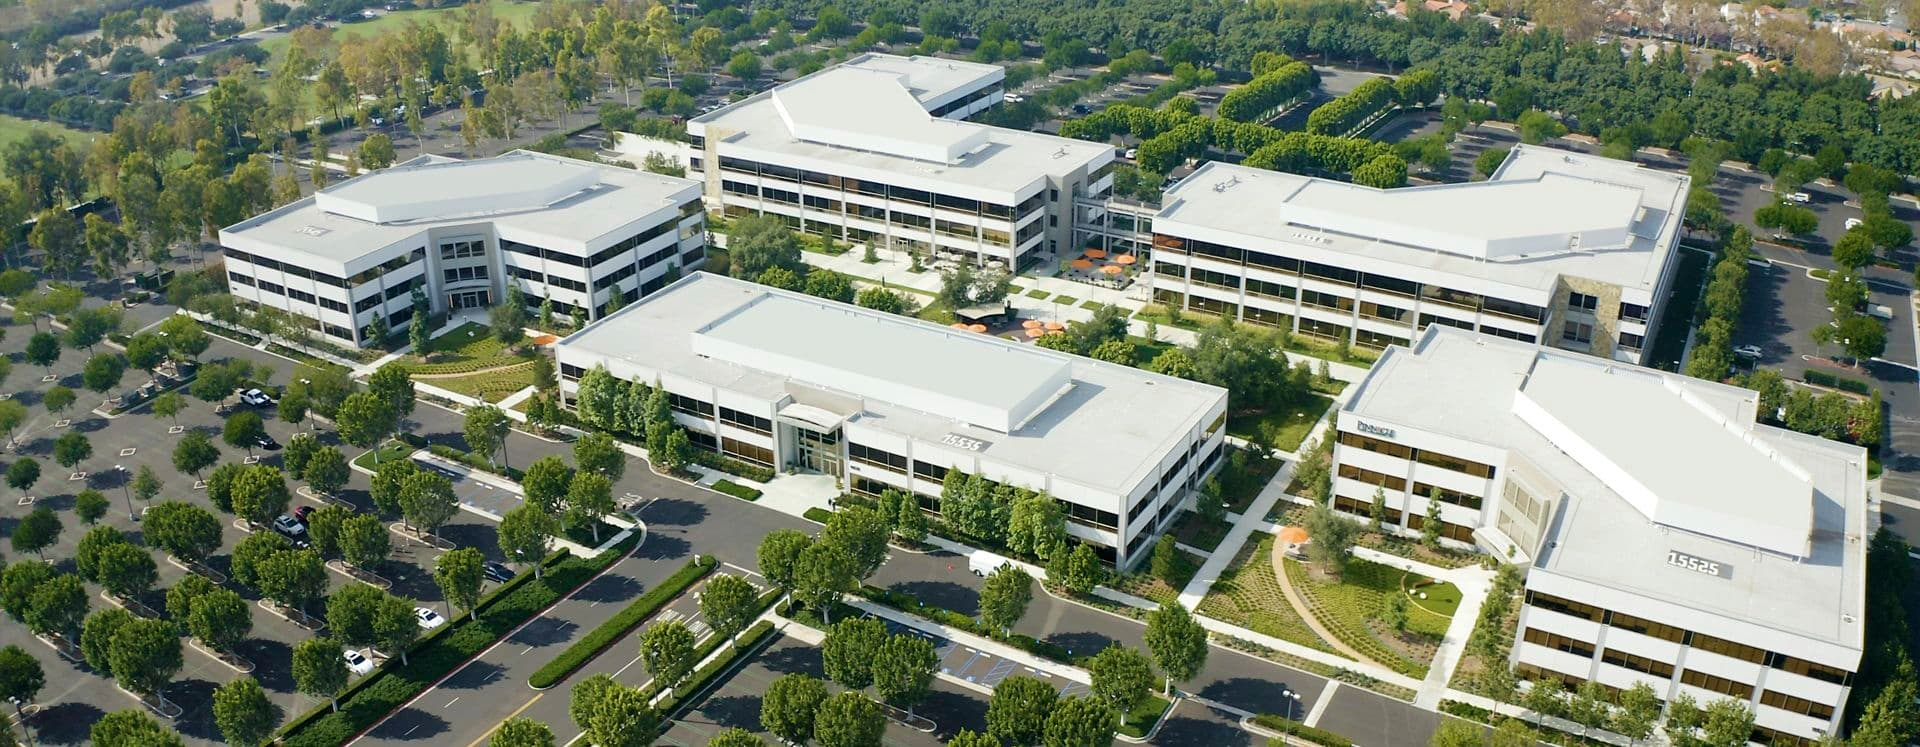 Aerial of Sand Canyon Business Center in Irvine, CA.